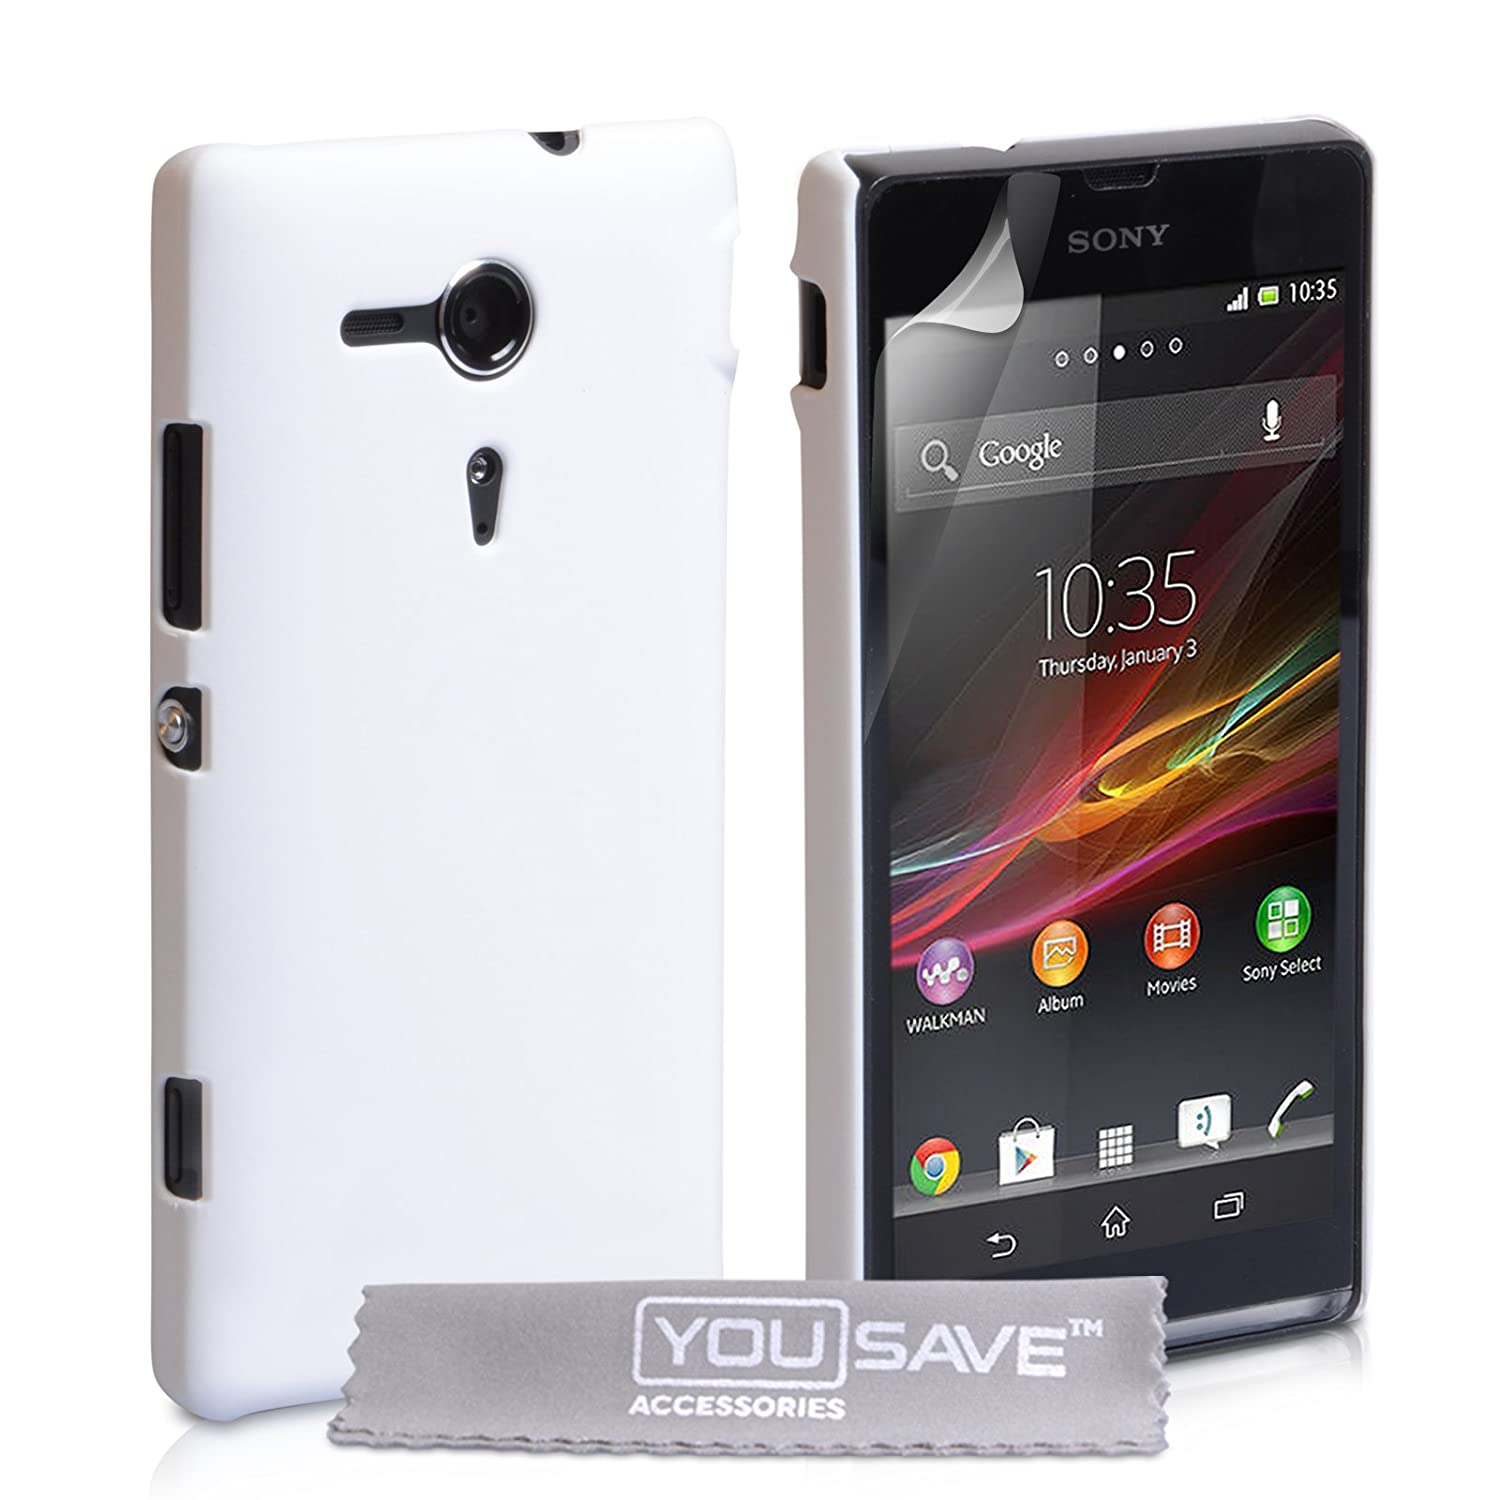 brand new 75a57 79b52 Yousave Accessories Case for Sony Xperia SP Case White Hard Hybrid Cover